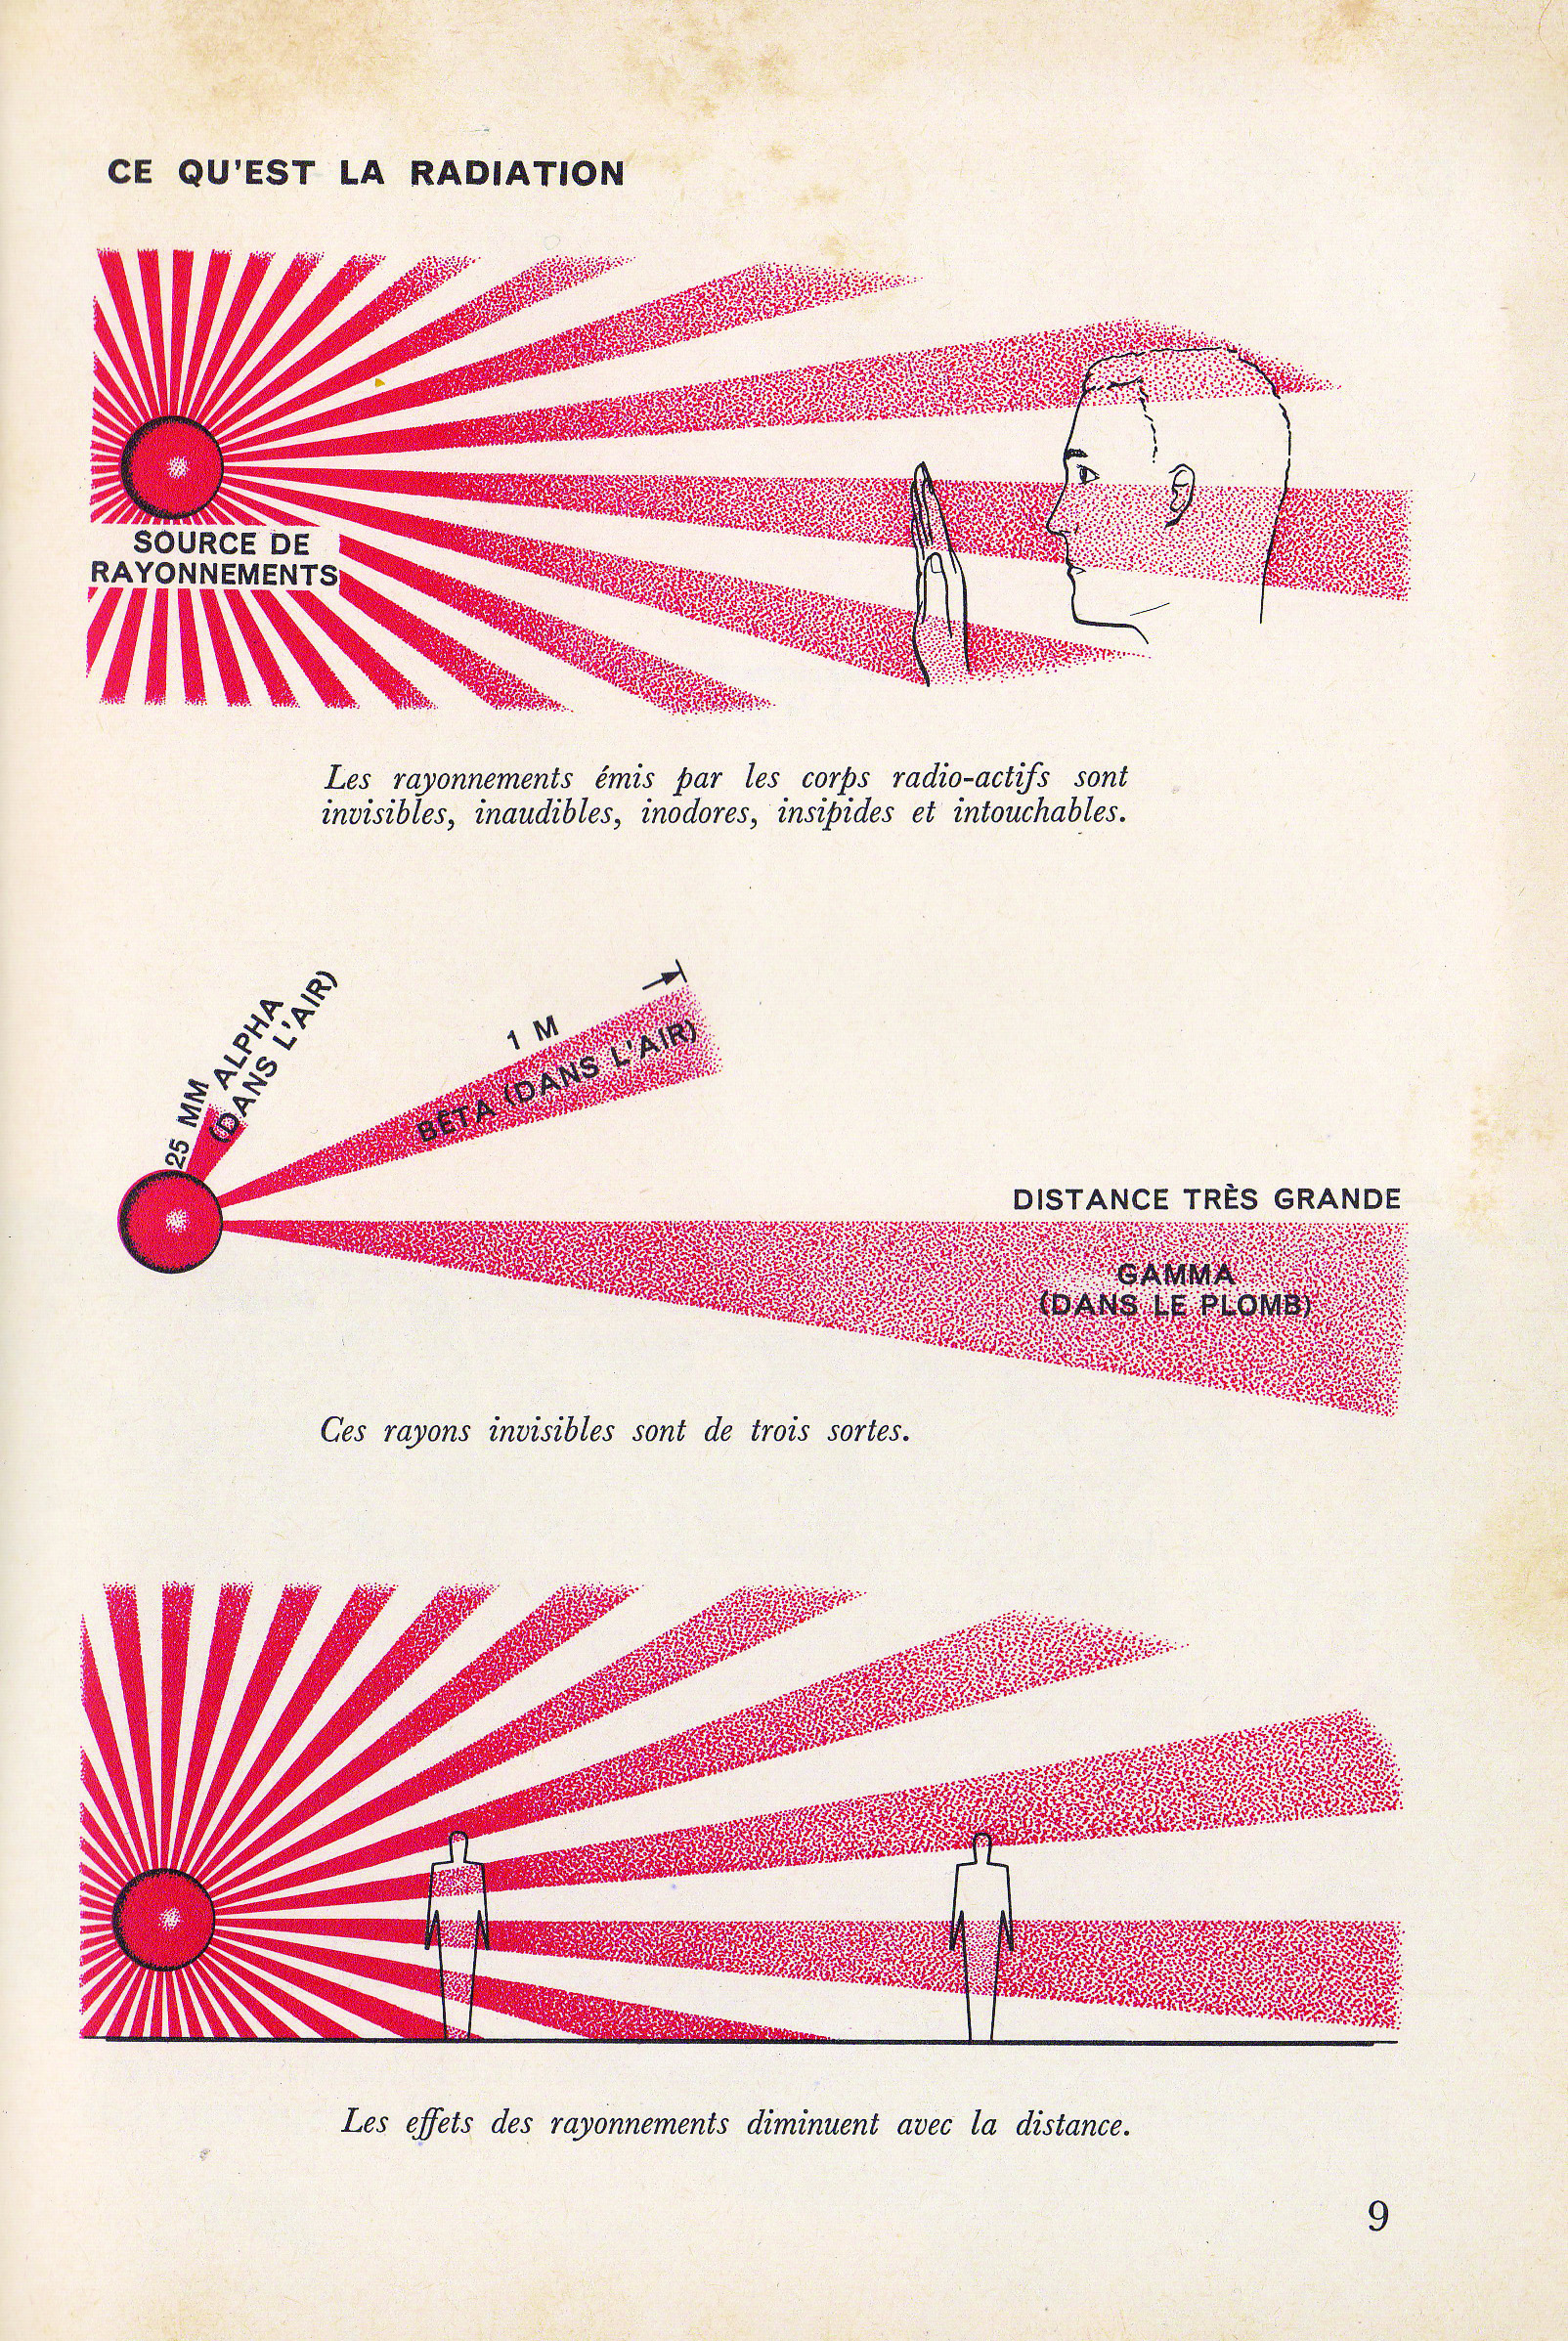 SciencesDuMonde_no97_1971_EnergieAtomique_la radiation